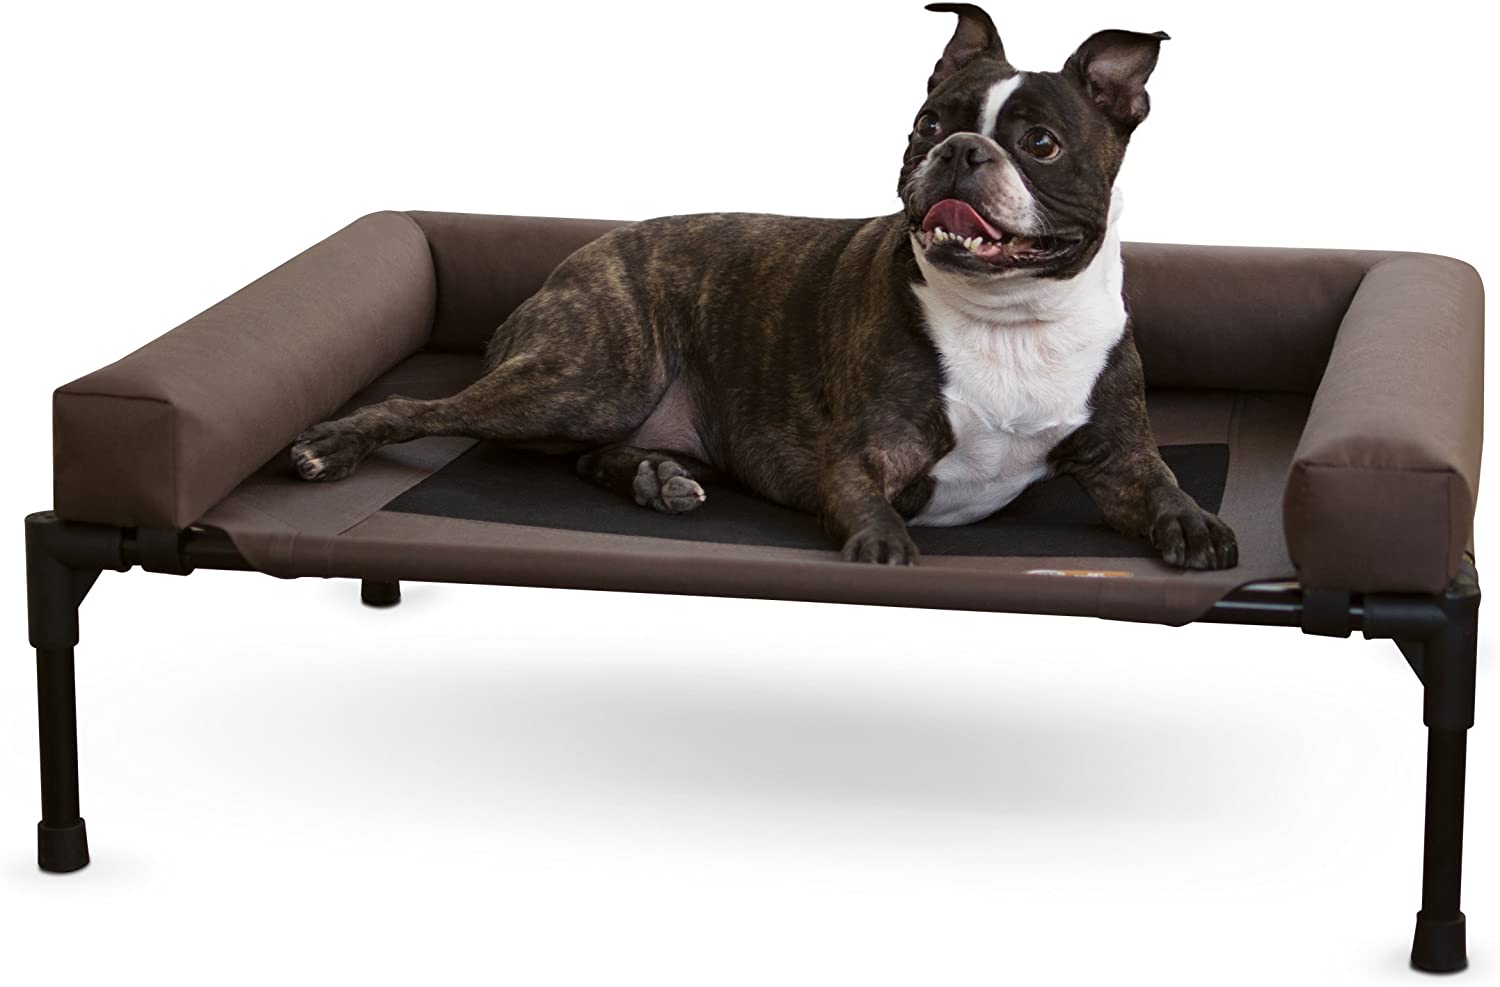 K H Pet Products Original Bolster Pet Cot Elevated Pet Bed